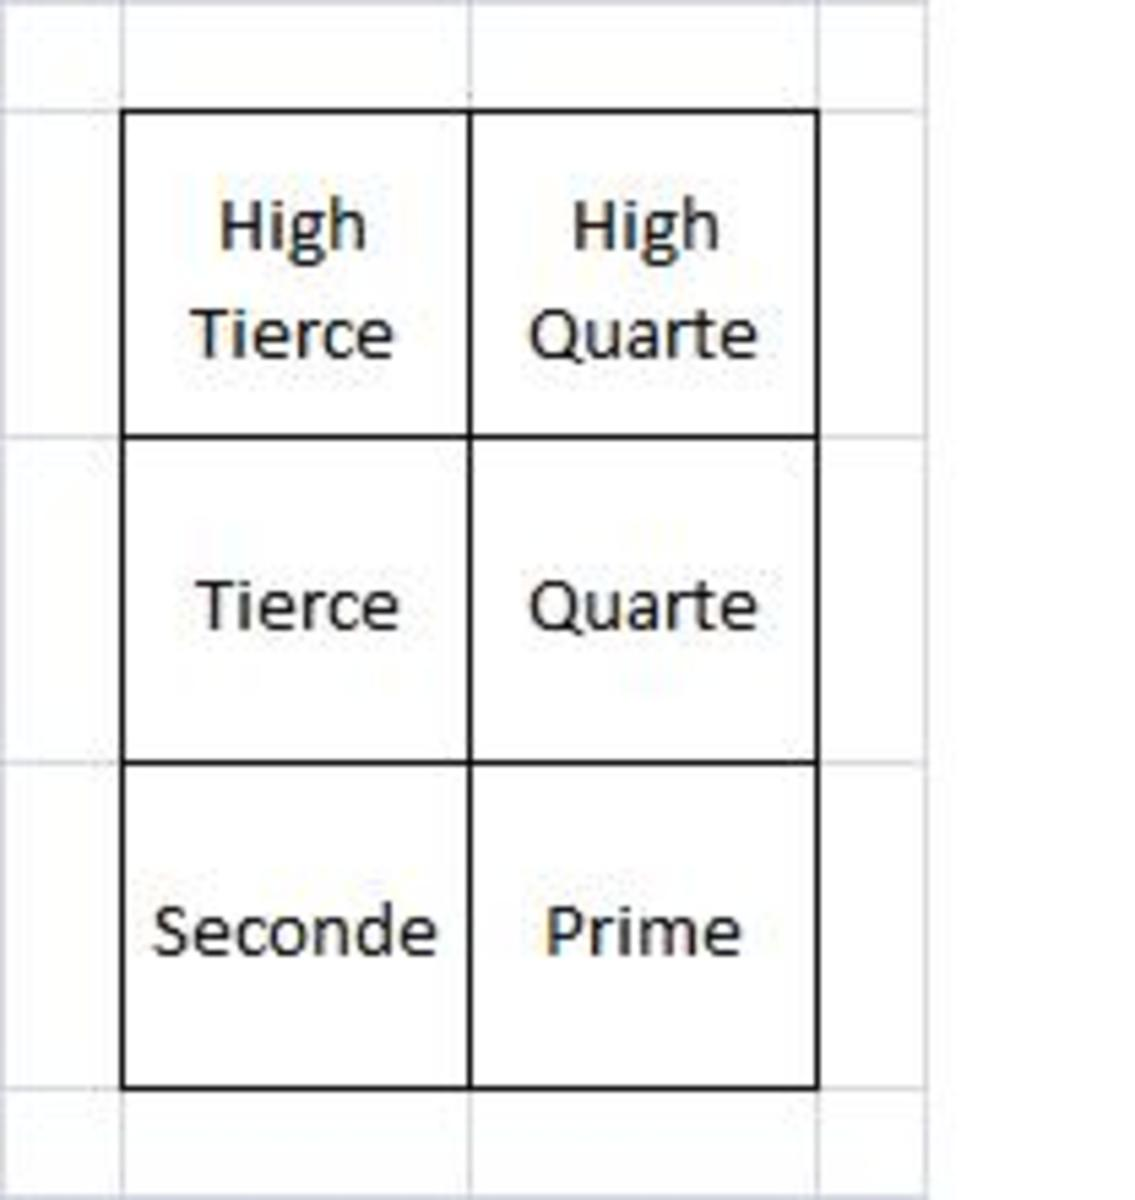 Quadrants for Defense - note the High Tierce and High Quarte quadrants, which are for use when confronted by Cavalry